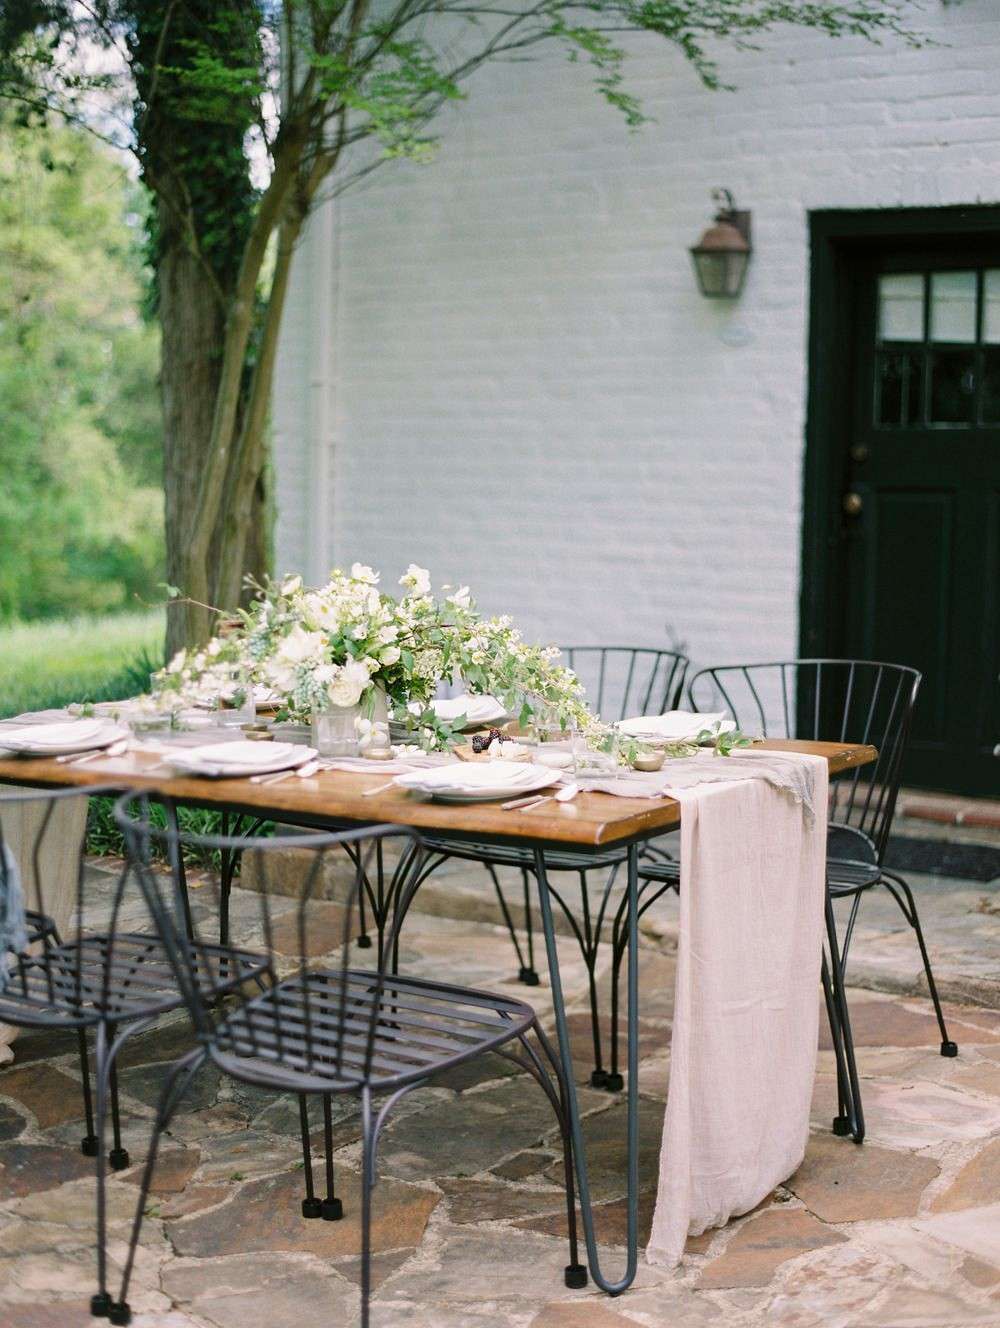 Kate and Scott's Classic, Neutral European-Inspired Garden Wedding